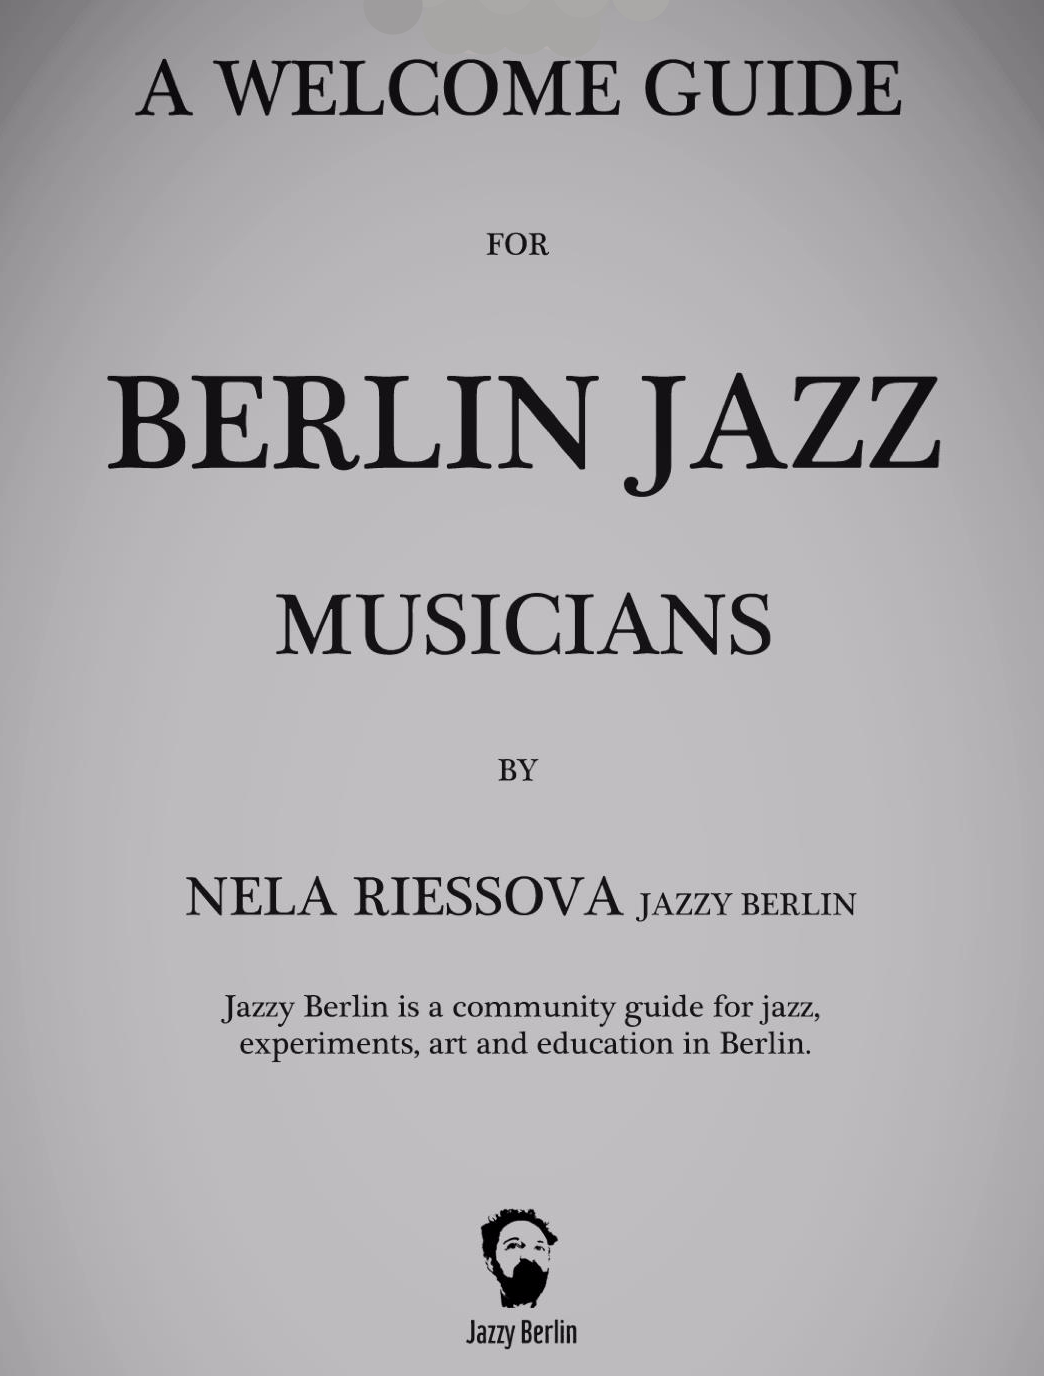 berlin jazz guide for musicians